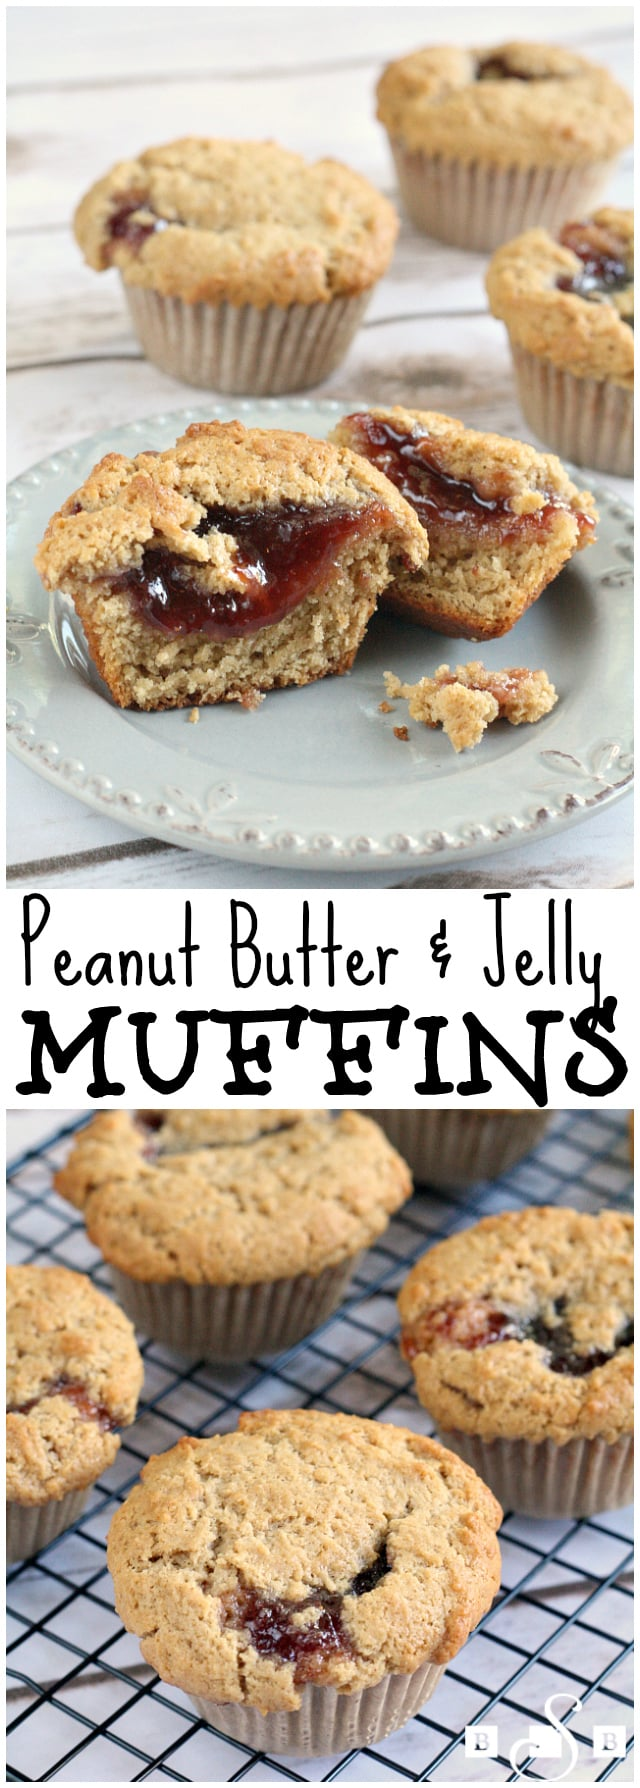 Packing lunches for four kids every day is a bit of a challenge, and I love that I can always find everything I need at my local Kroger store. My kids love peanut butter and jelly so I'm always looking for ways to spice it up just a little. I made this muffins and they were a huge success with my kids (and my husband too)! These would be great to pack in school lunches or even to serve as an after school snack with a big glass of milk.